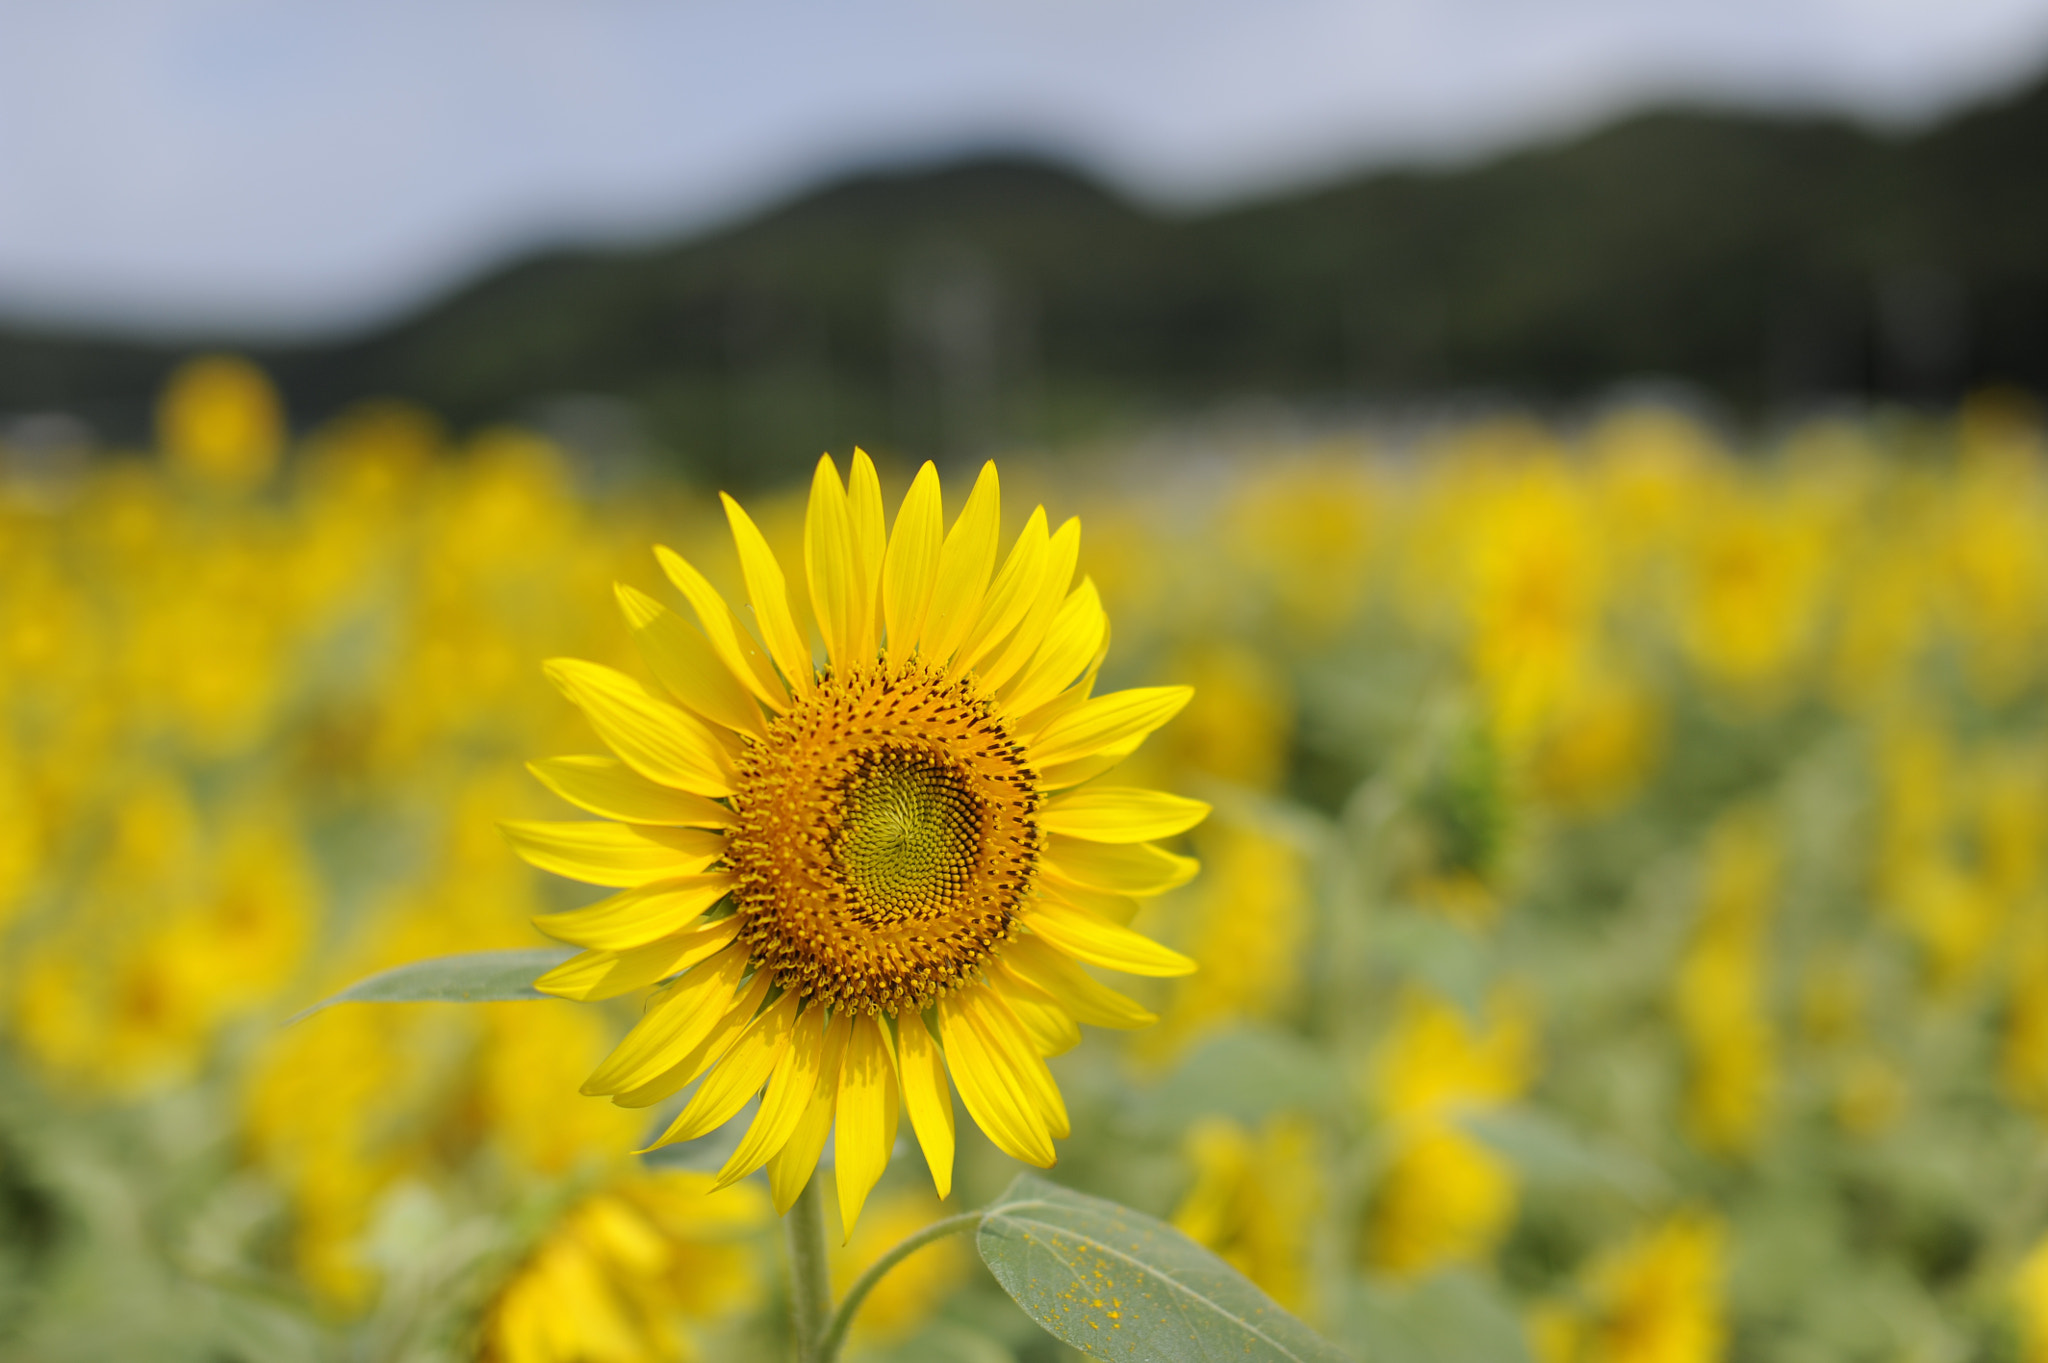 Photograph Sunflower by Bong Grit on 500px